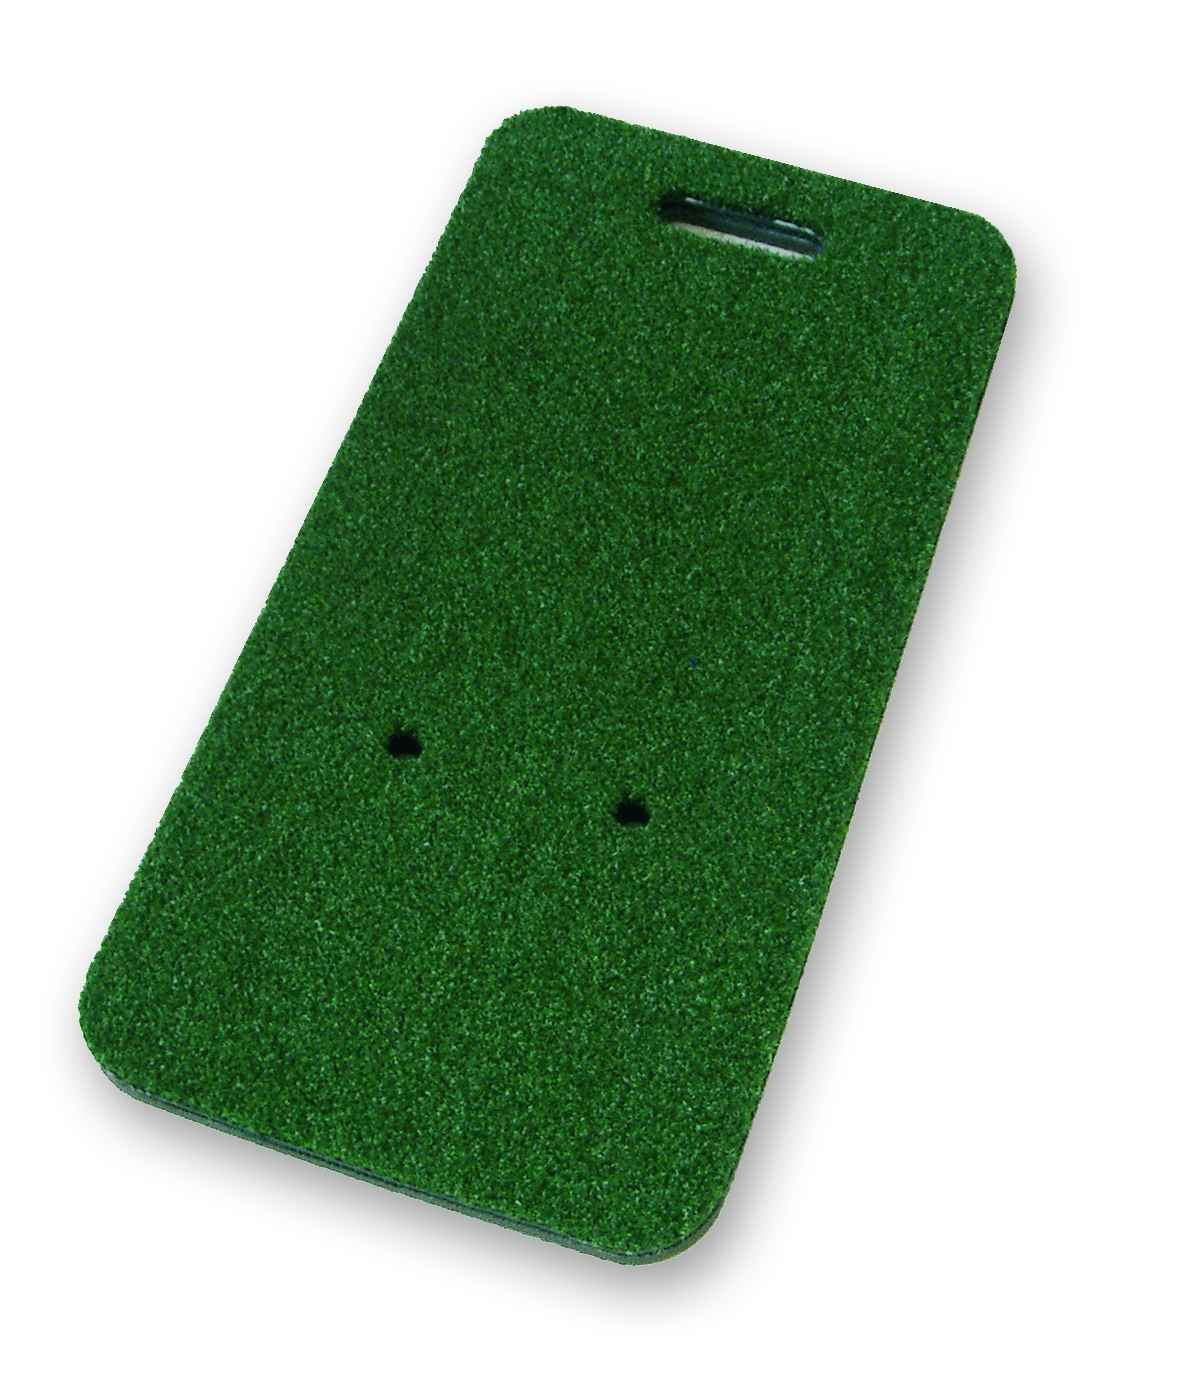 artificial turf mat in green nylon